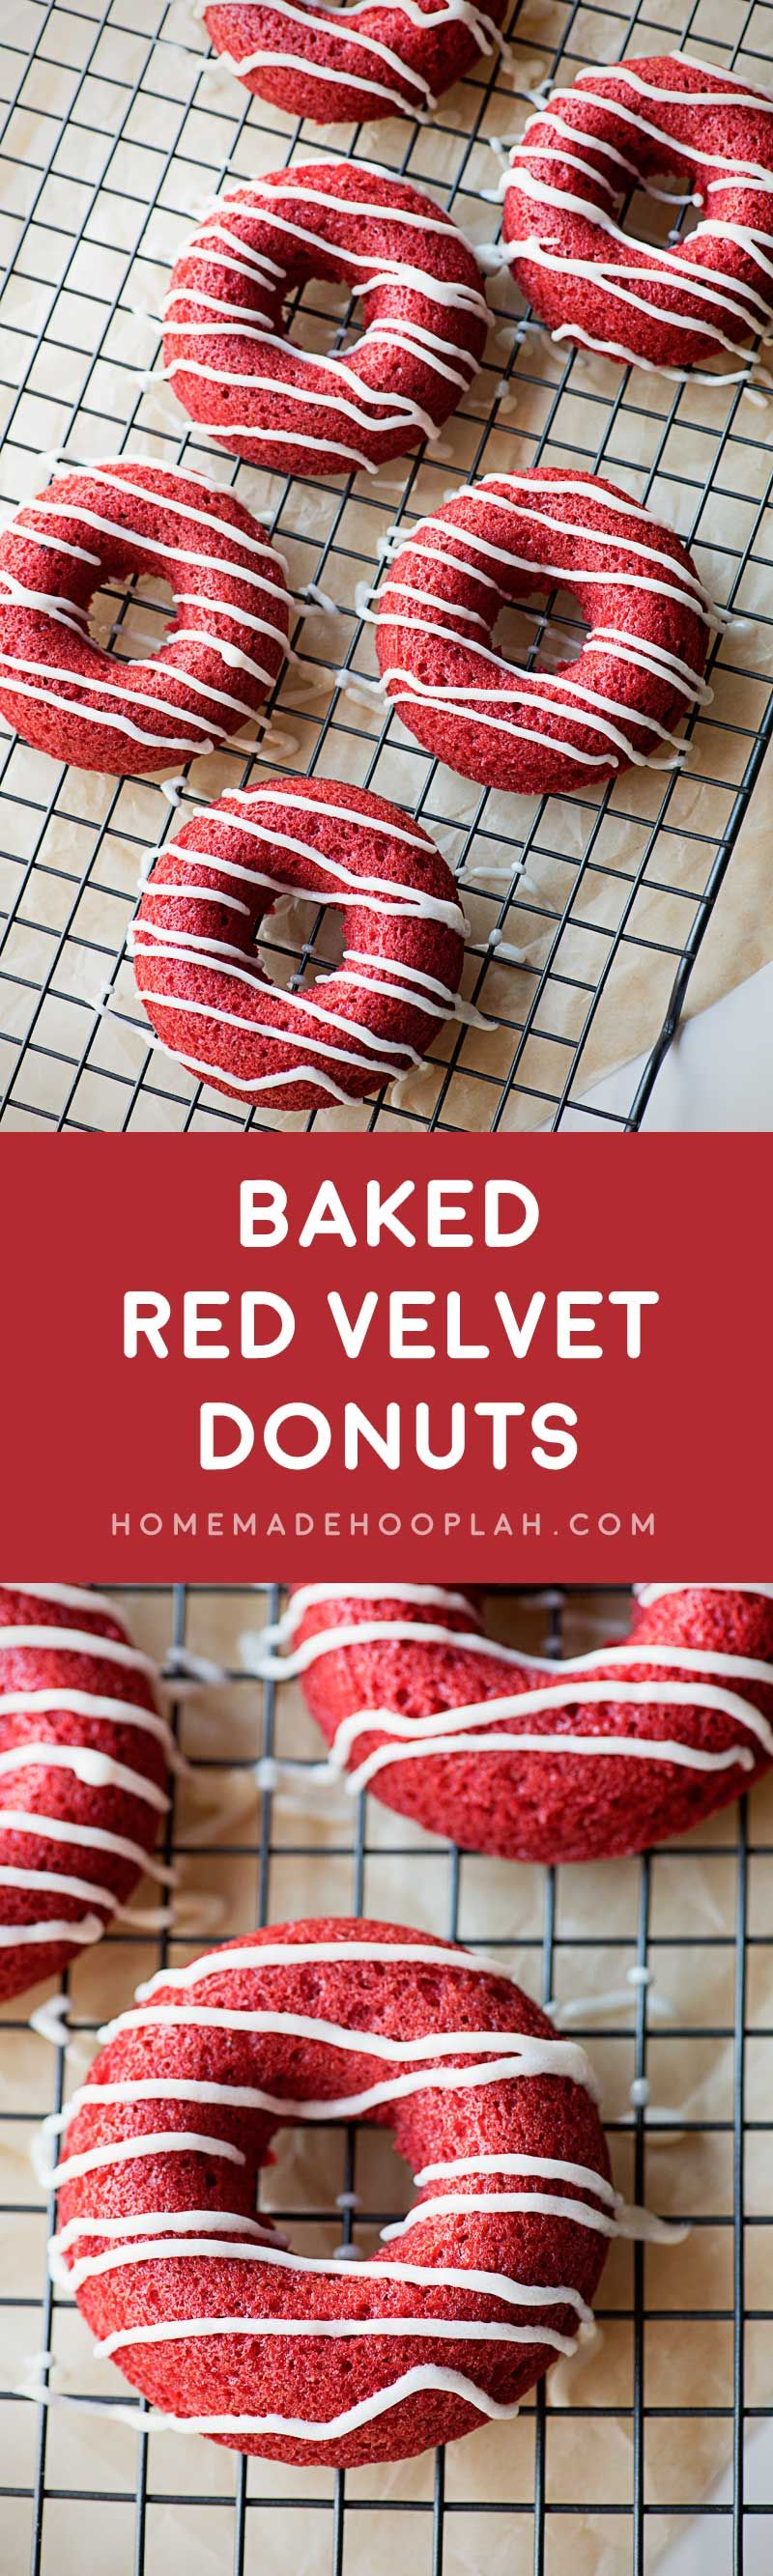 Baked Red Velvet Donuts Super Moist And Spongy Baked